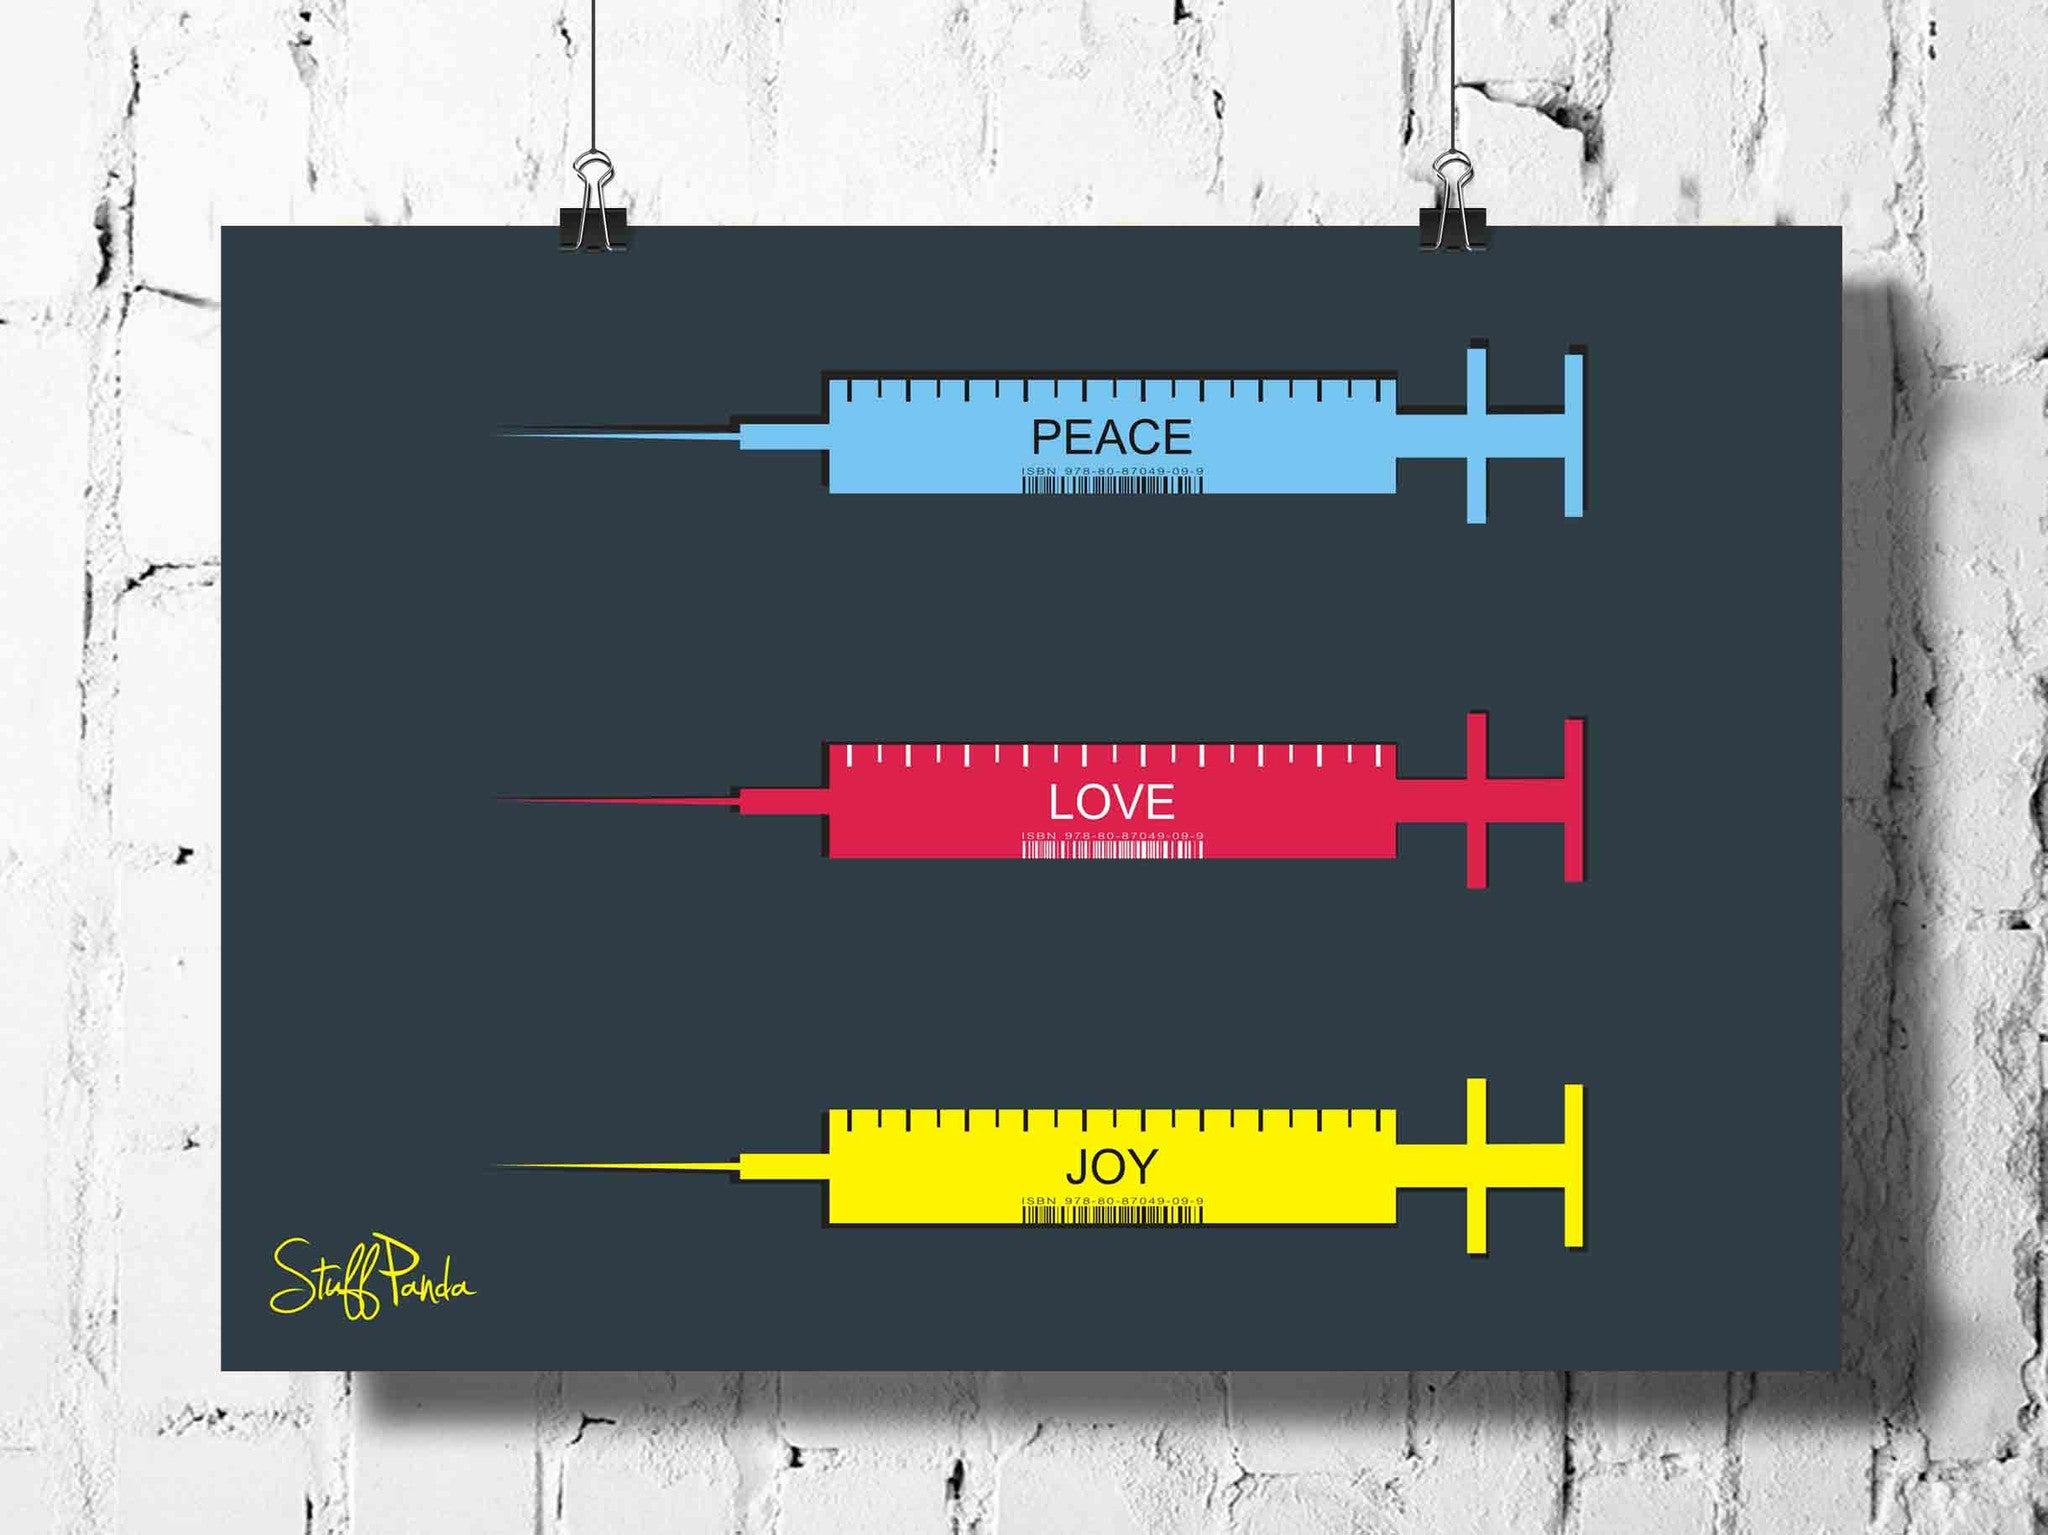 Cool Abstract Motivation Love Syringes wall posters, art prints, stickers decals - stuffpanda - 1